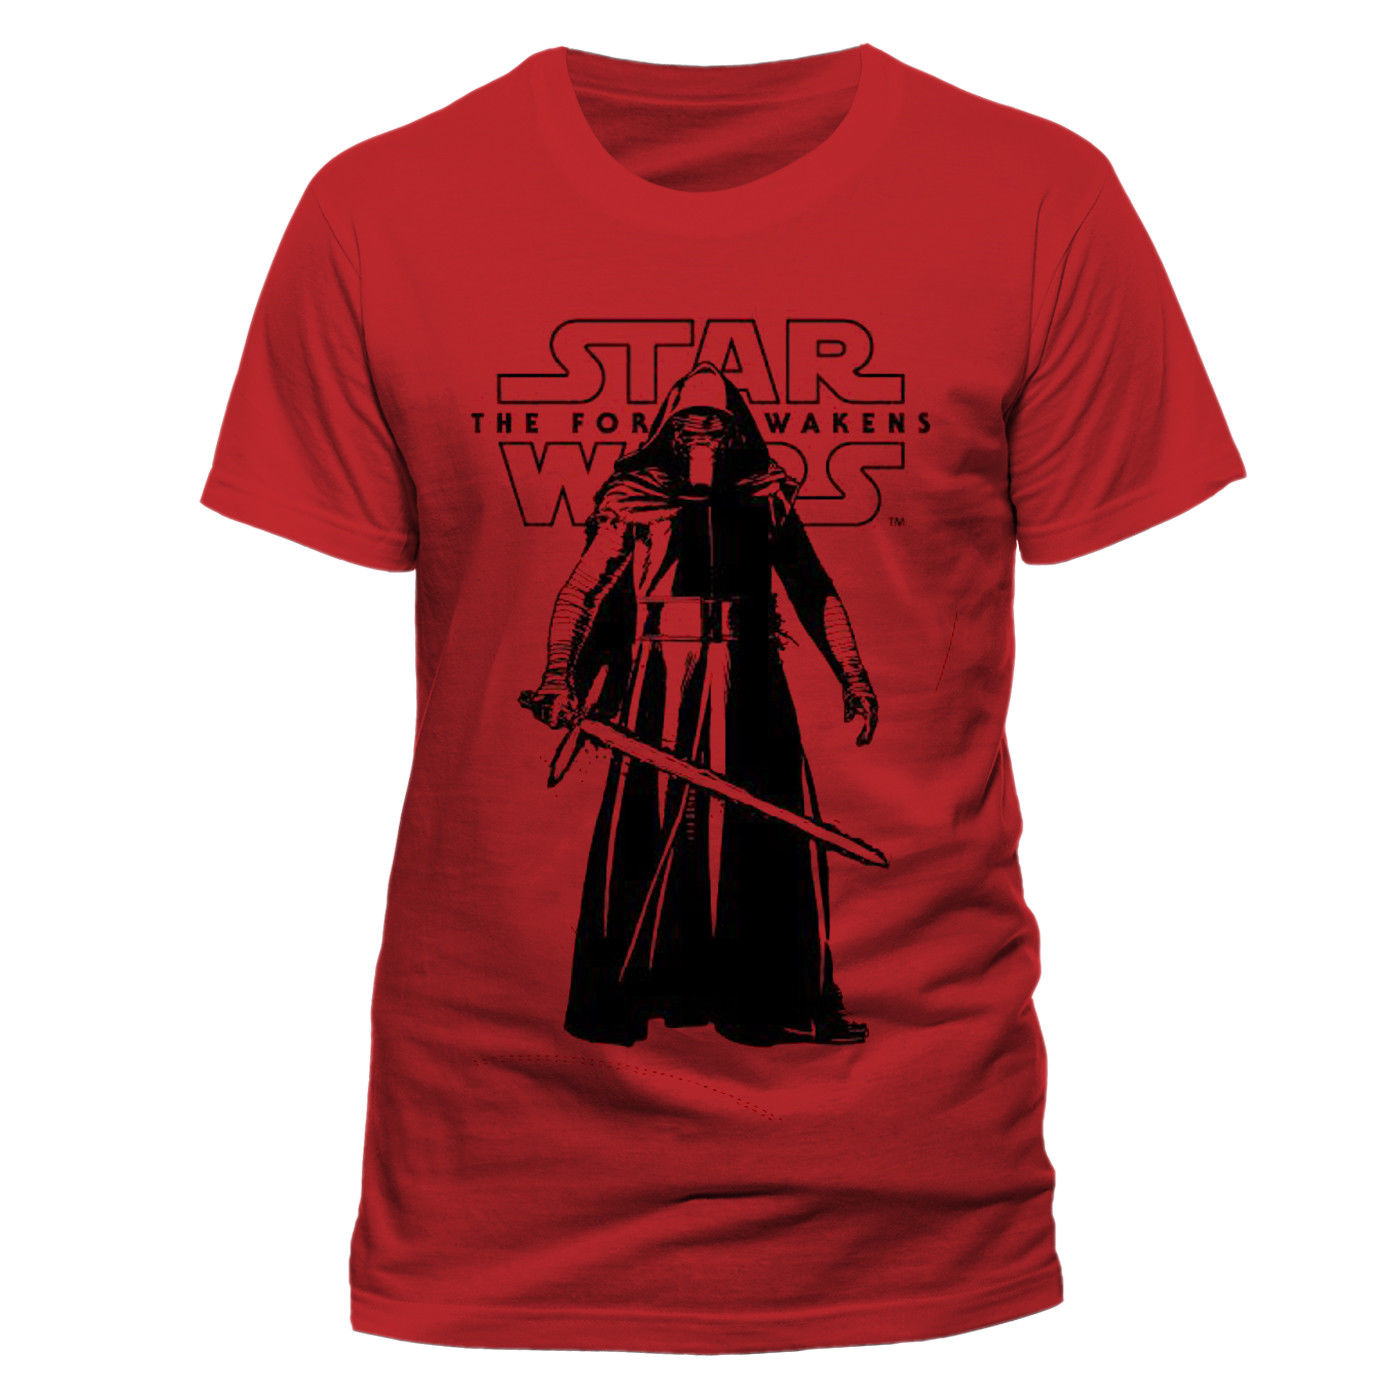 Star Wars VII 39 Kylo Ren Standing 39 T Shirt NEW amp Free shipping Print T Shirt Mens Short Sleeve Hot in T Shirts from Men 39 s Clothing